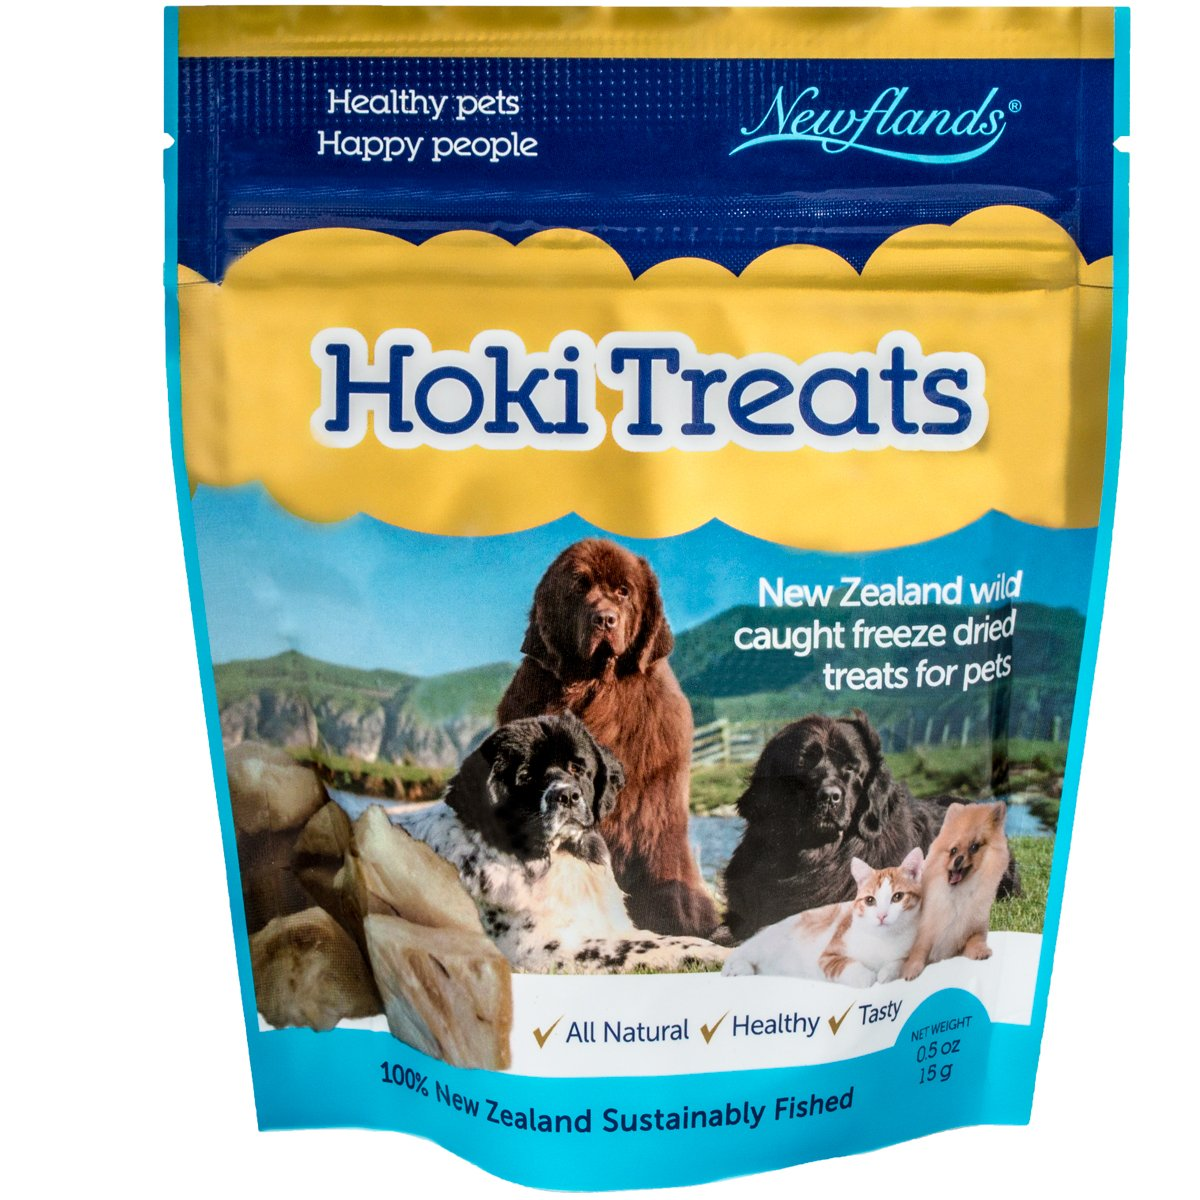 Newflands Hoki Premium Pet Treats, 100% Natural Food Supplement For Dogs and Cats, 0.53oz (15gm)